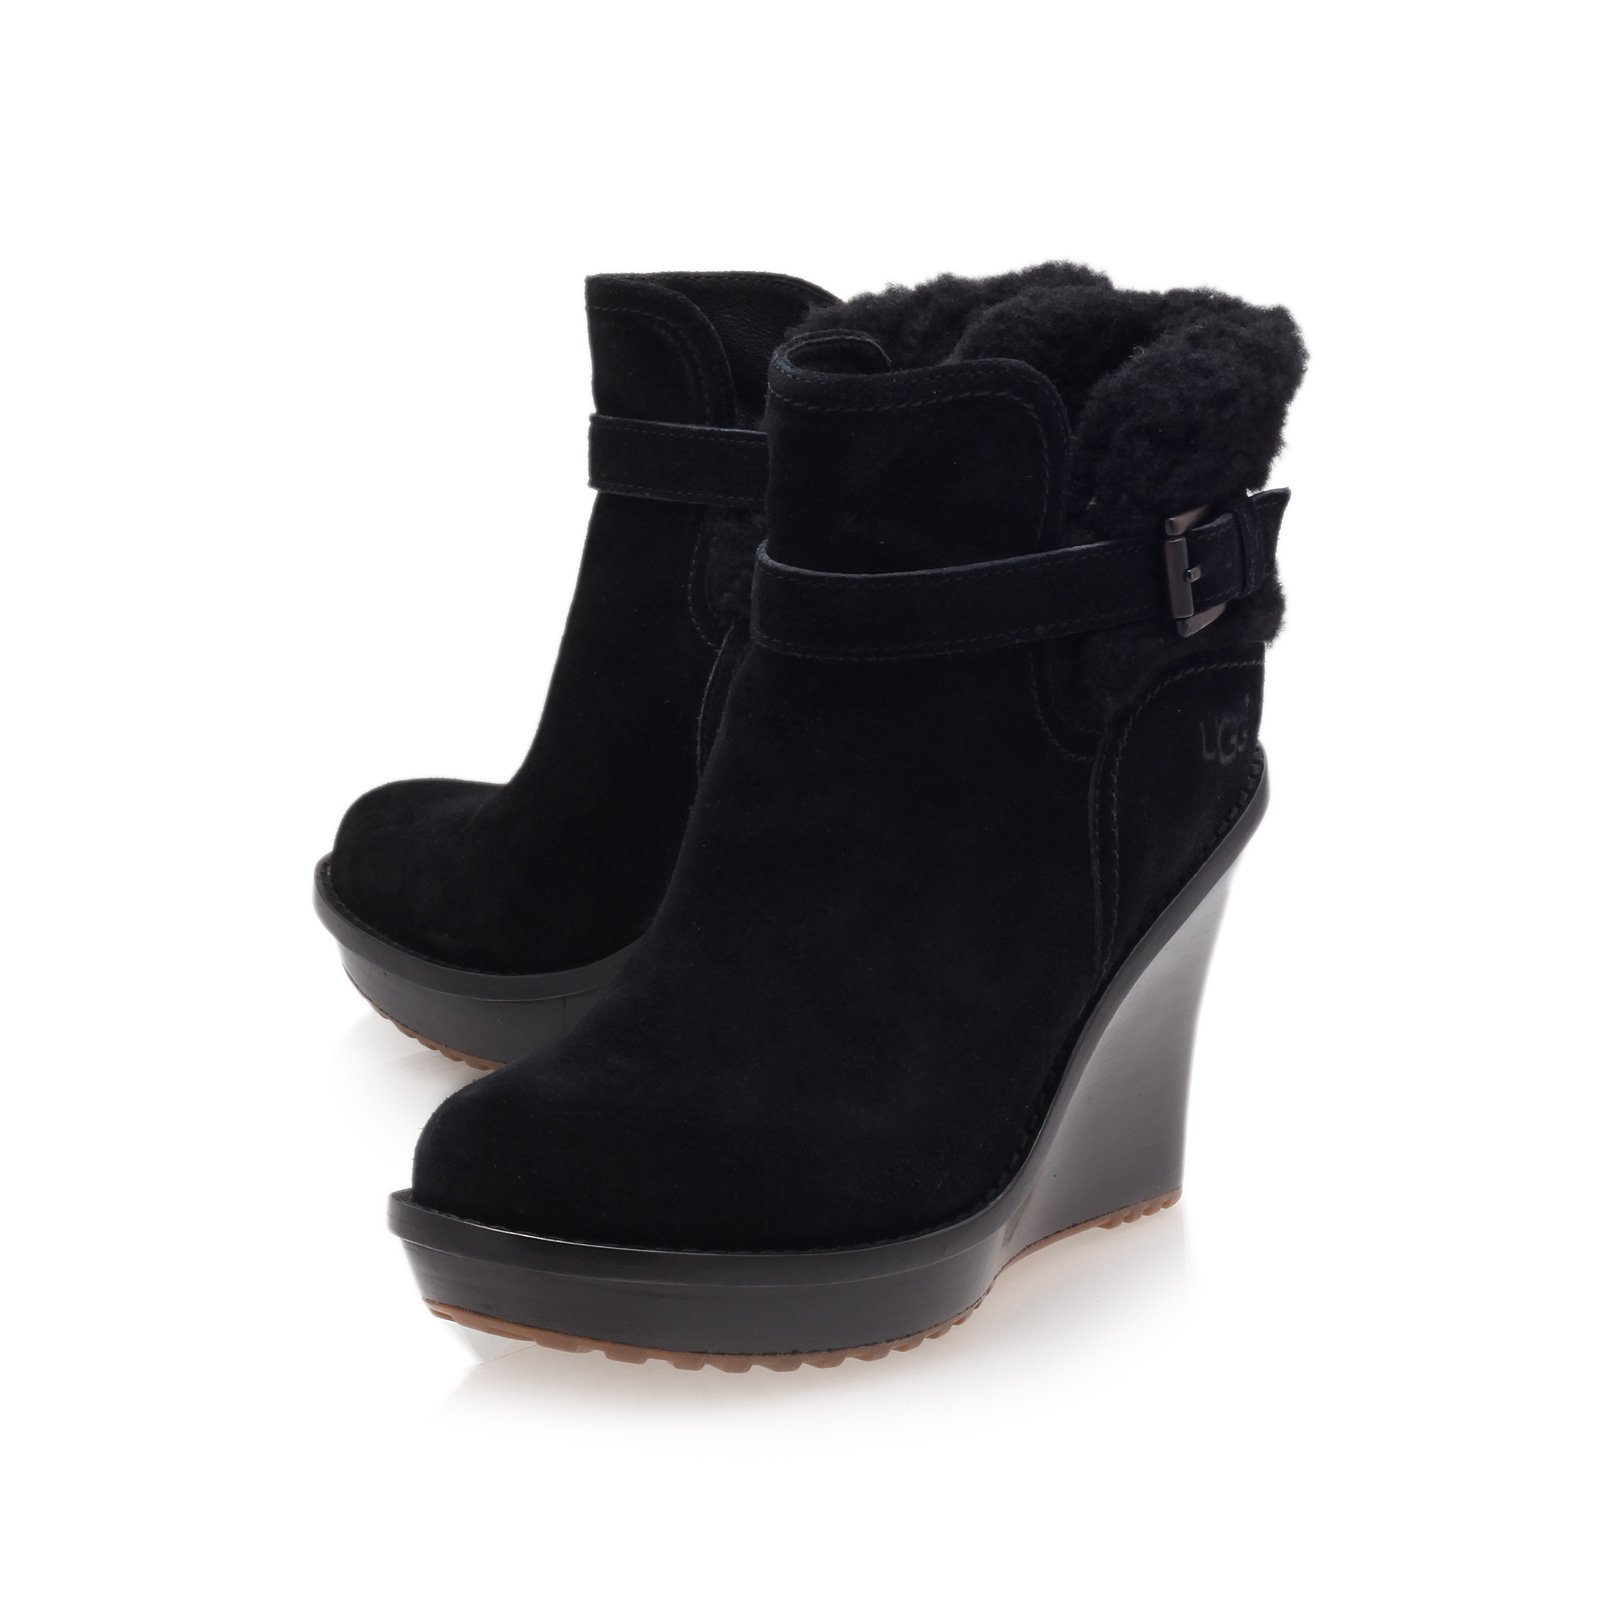 768fc855cf27 ... shop anais ugg anais black suede wedge ankle boot by ugg 02475 27f7b